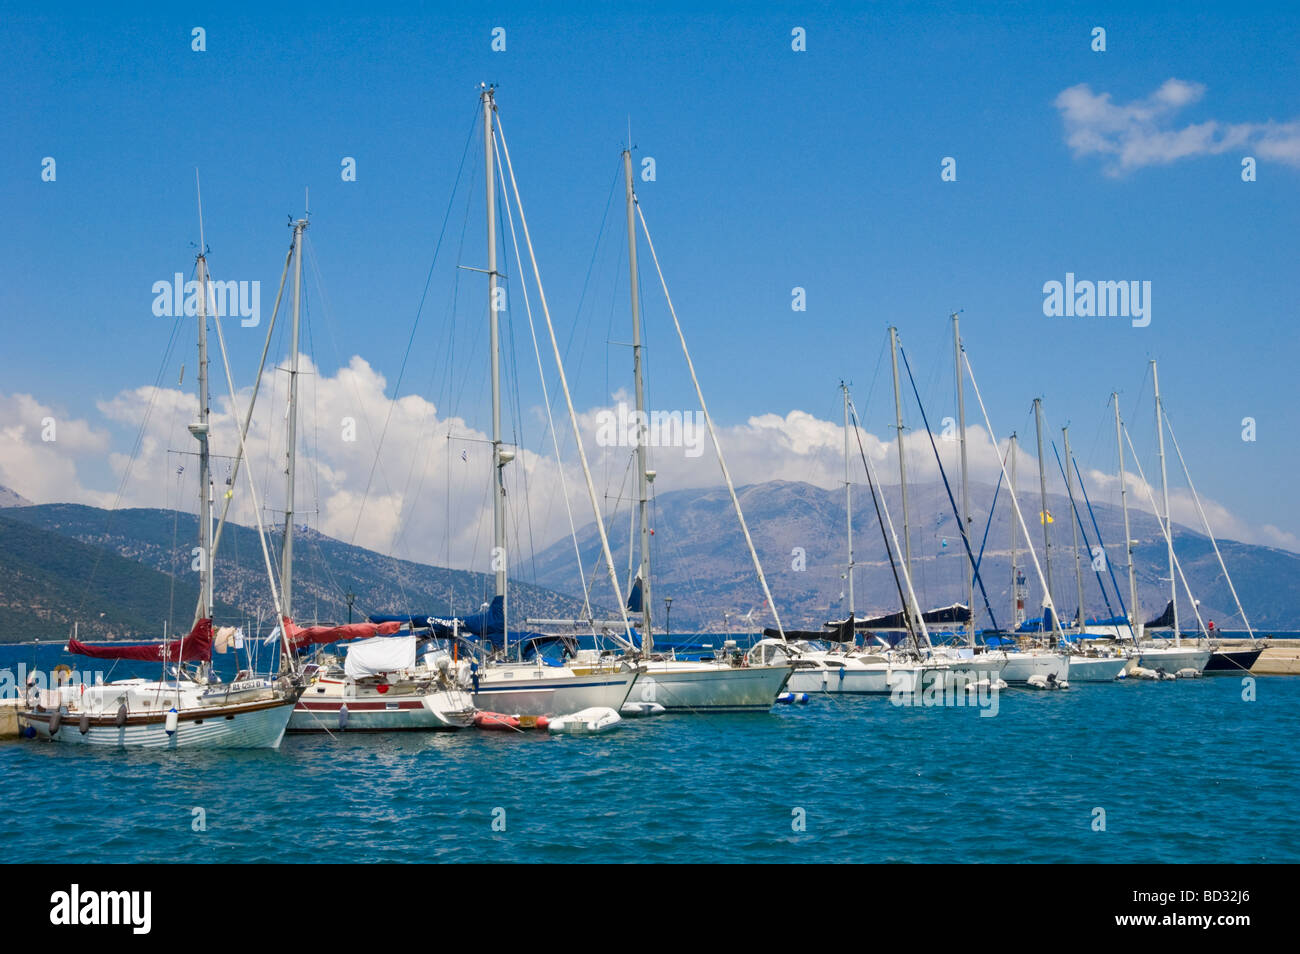 Sailing yachts moored in Sami harbour on the Greek Mediterranean island of Kefalonia Greece GR - Stock Image